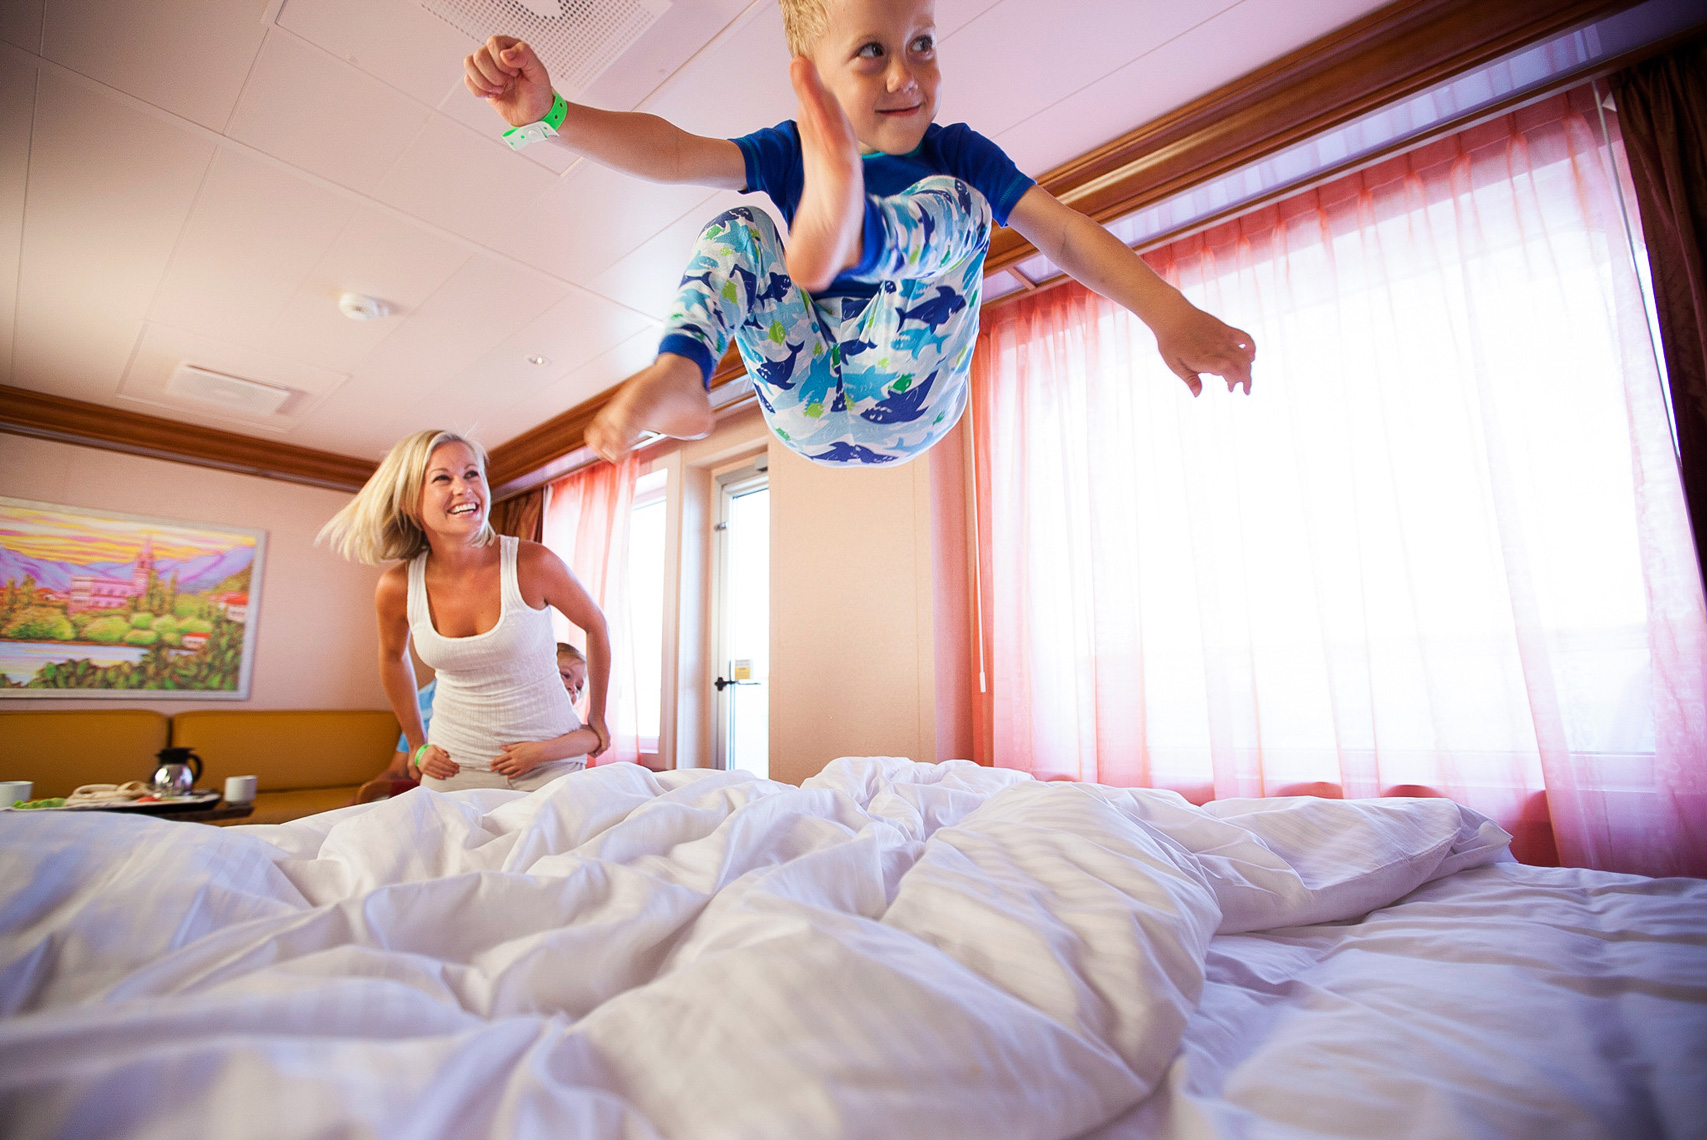 Carnival-cruise_kid jumping on bed